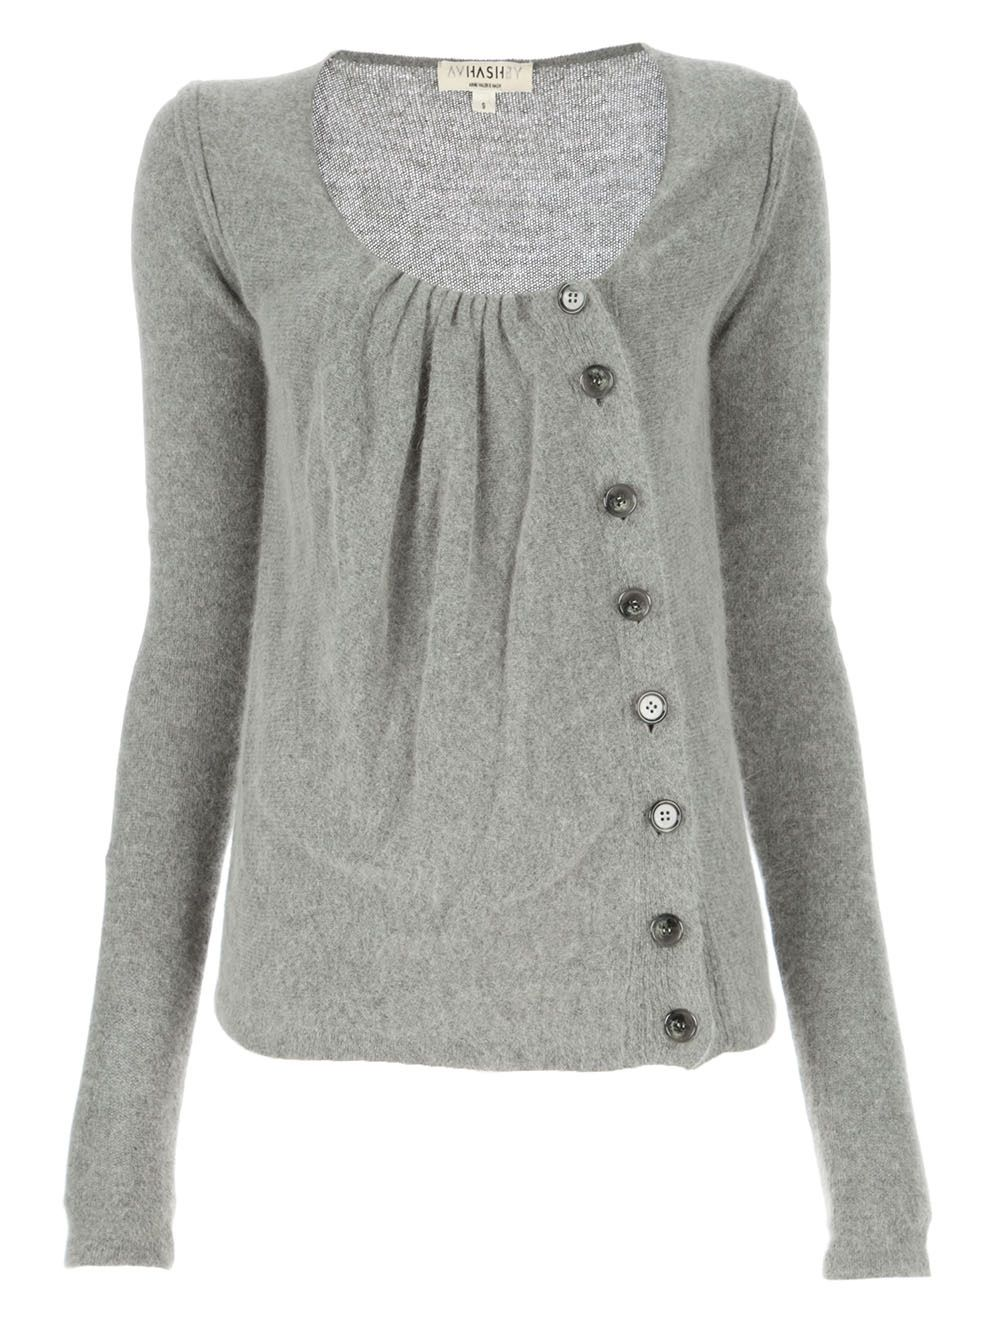 Precious asymmetrical button cardigan! This is just perfect! Cute ...